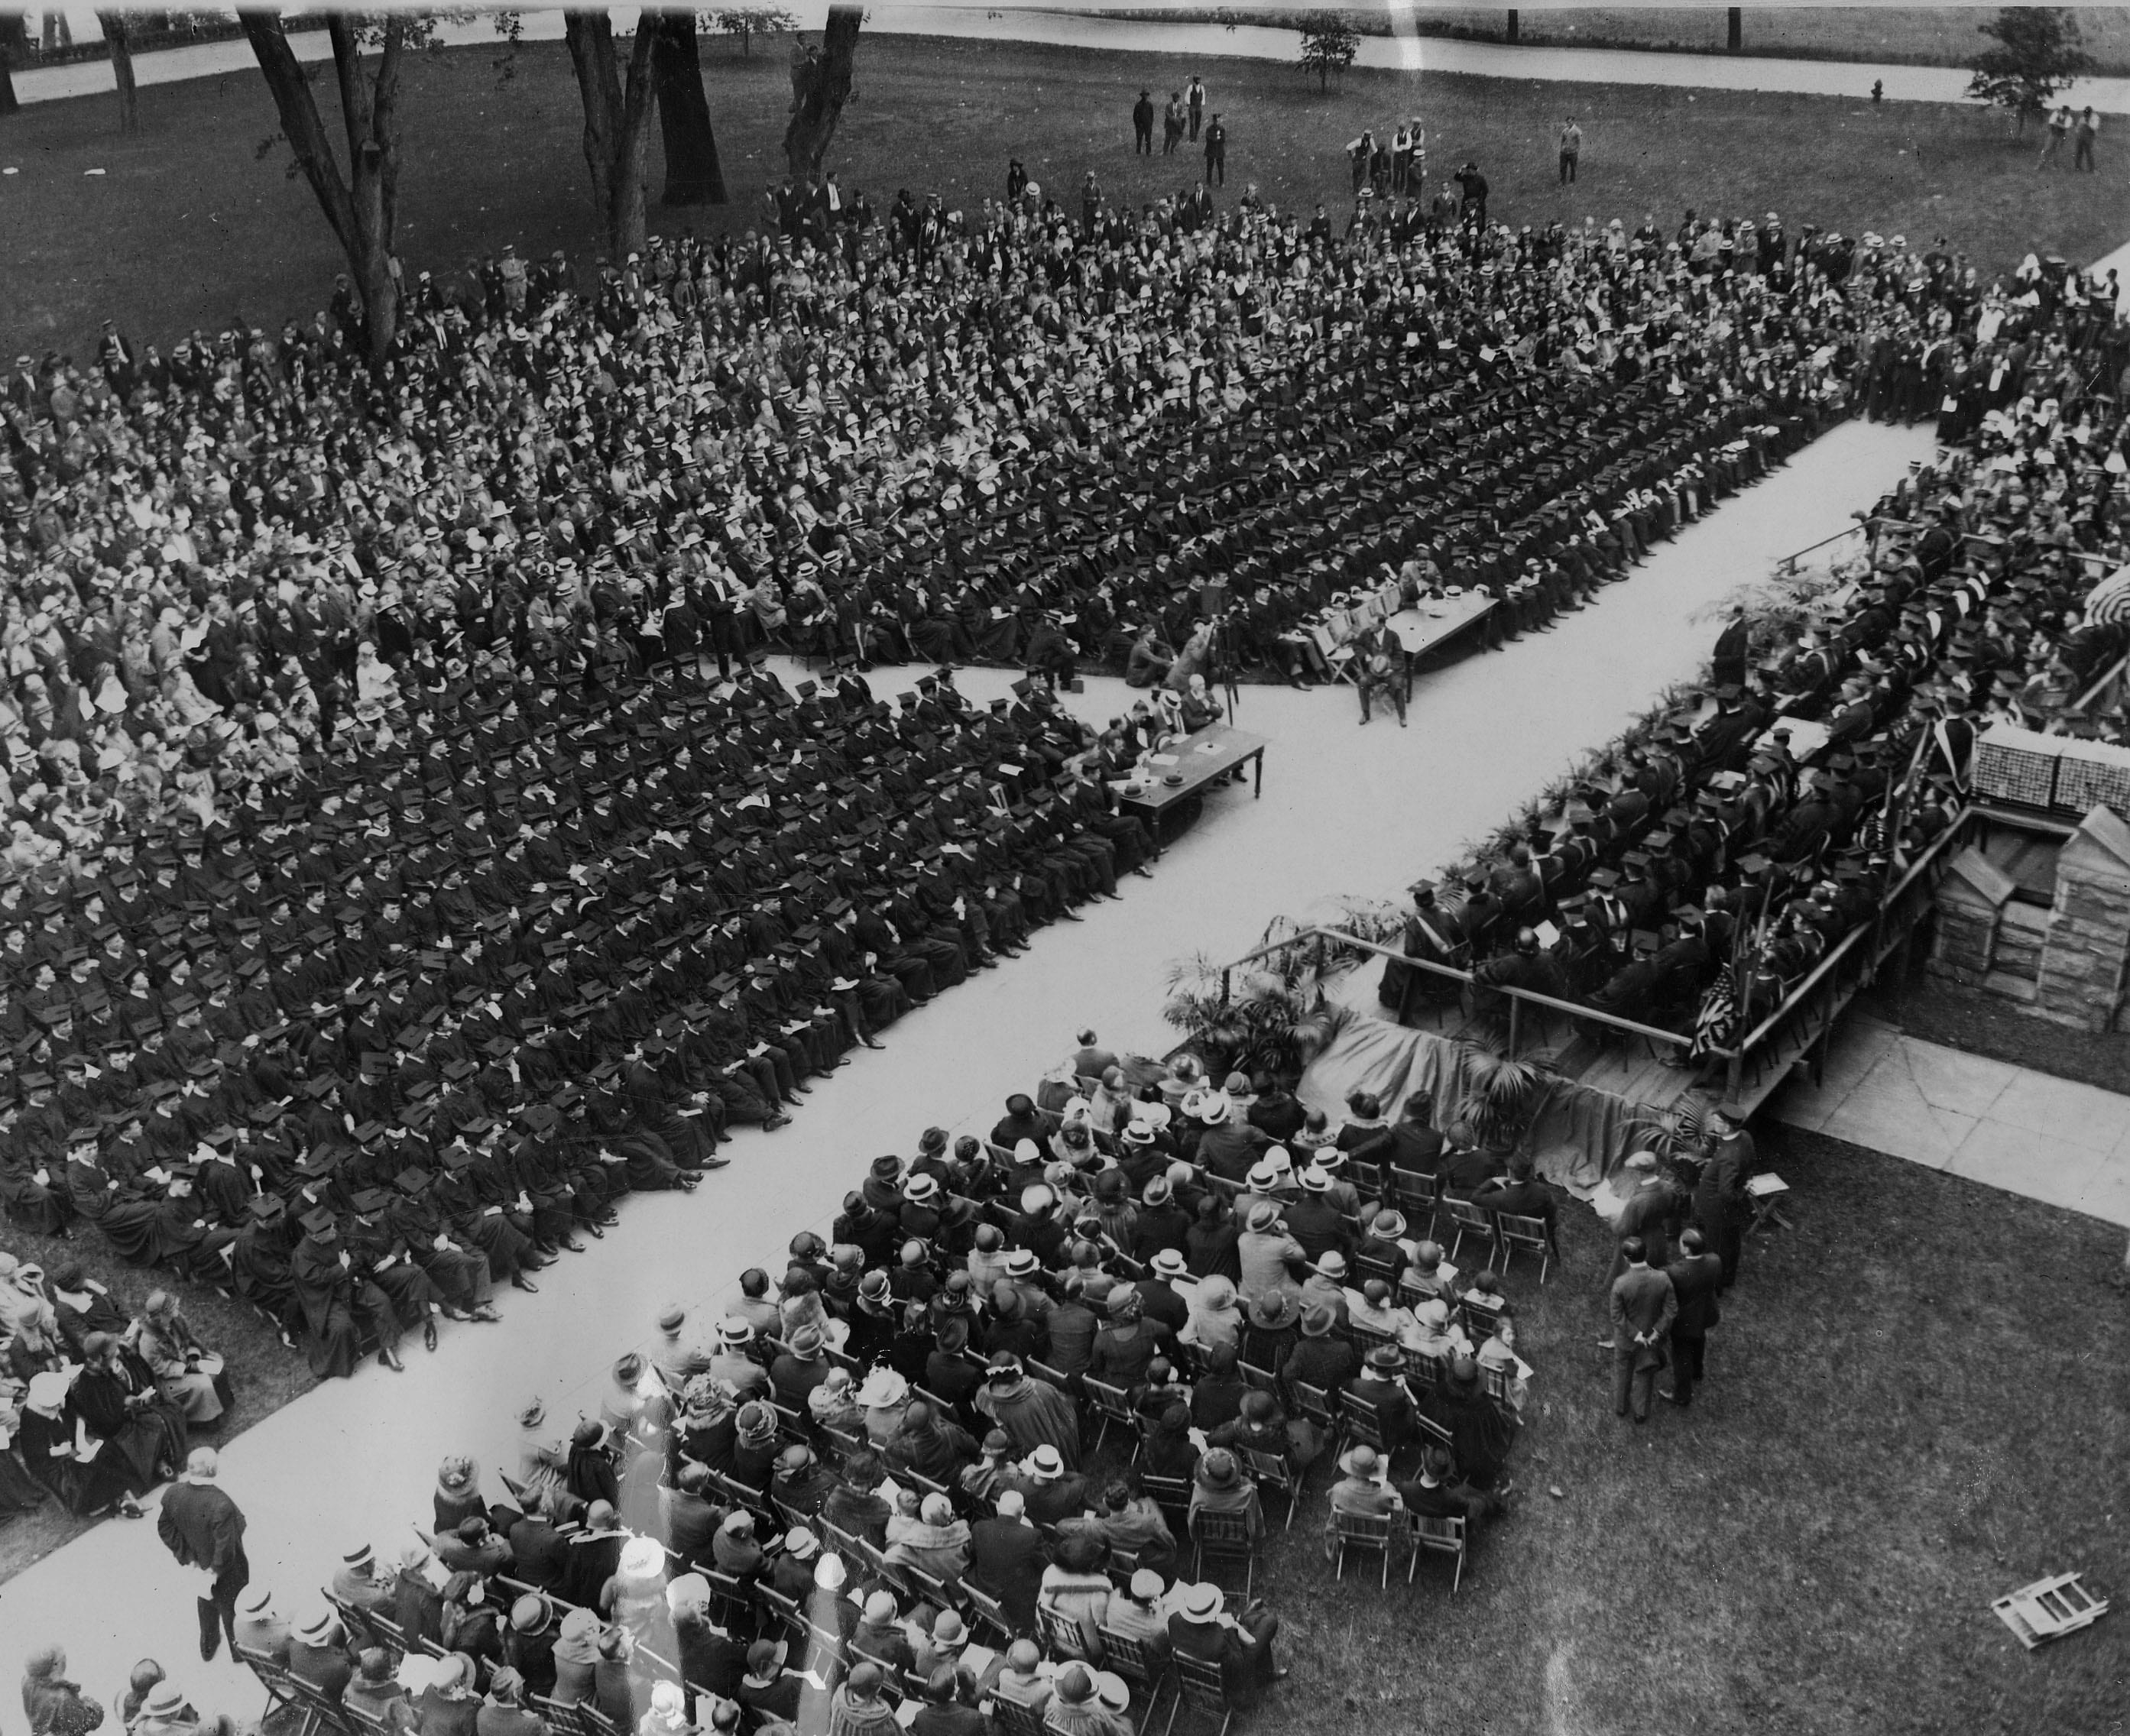 Georgetown University commencement exercises on Healy lawn (1924)